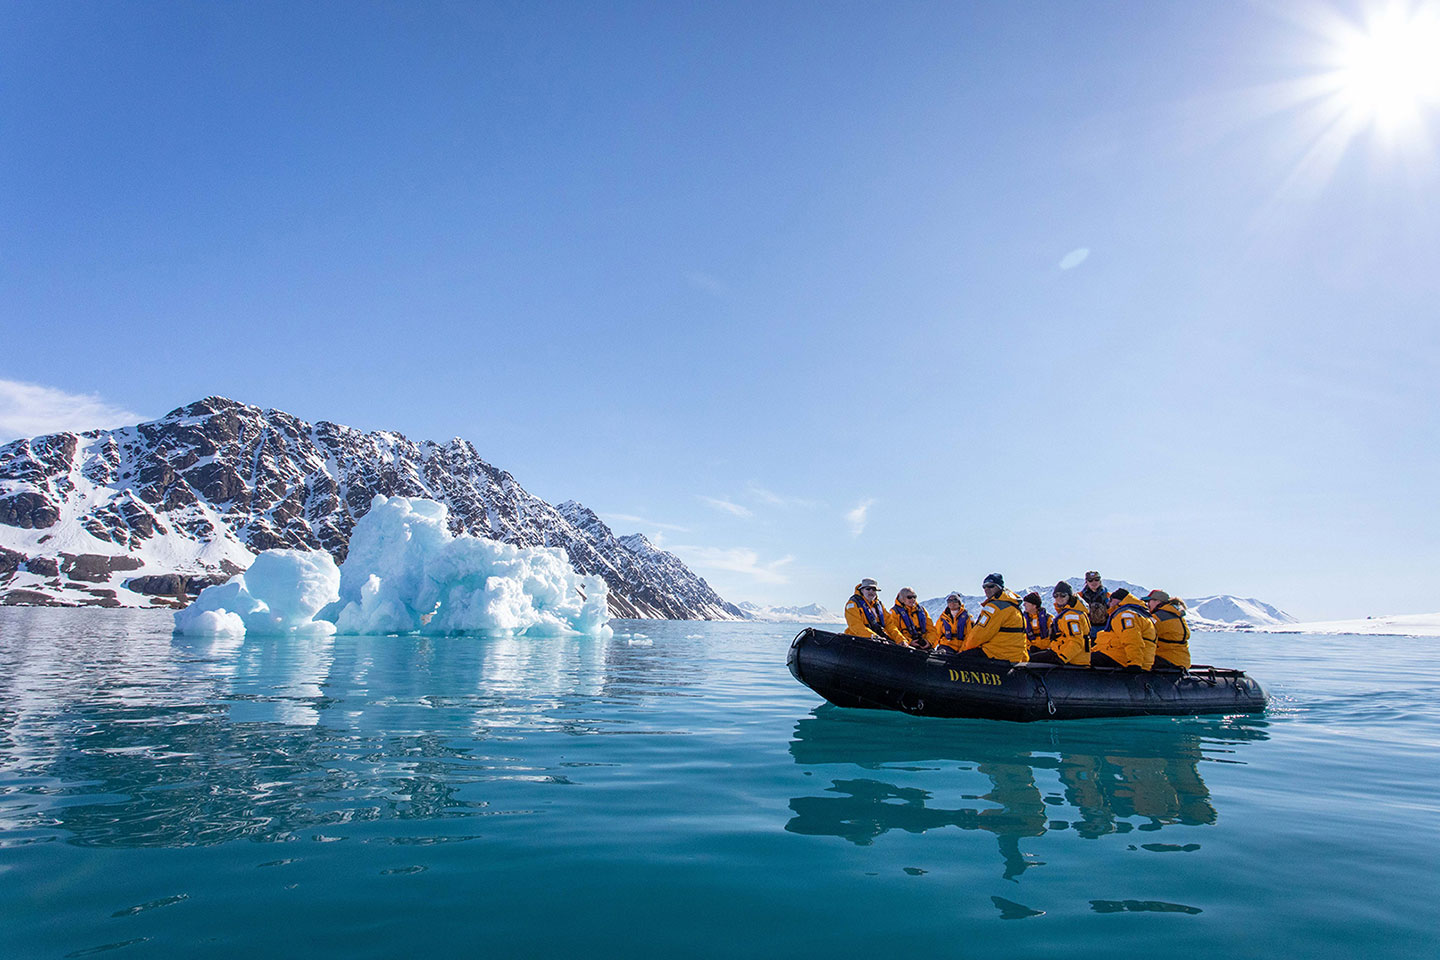 Guests enjoy a Zodiac tour during a polar expedition in Svalbard.